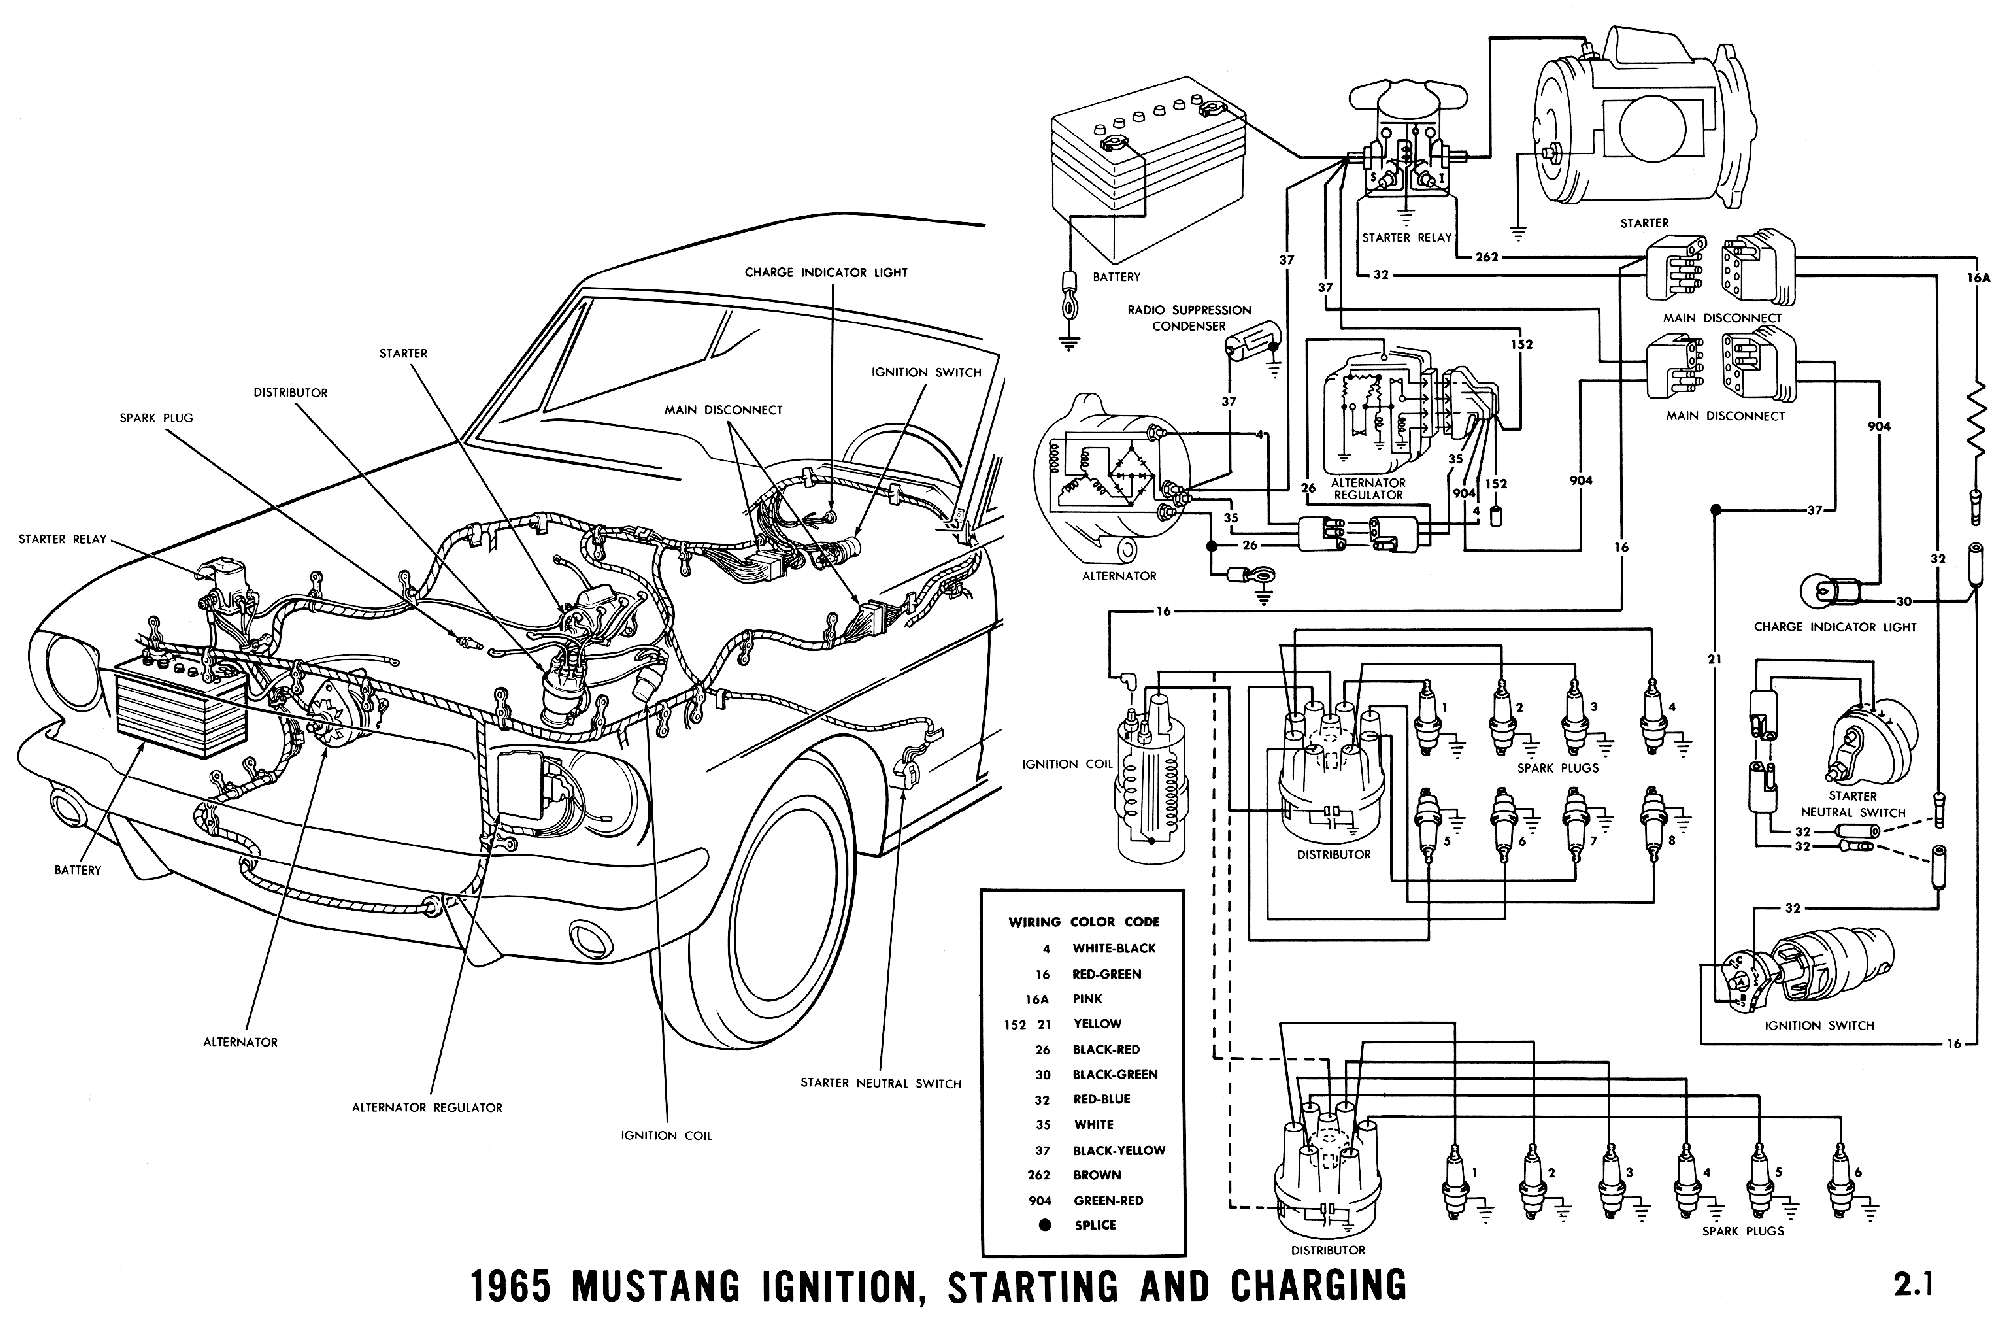 1965 Mustang Wiring Diagrams Average Joe Restoration 71 Corvette Wiper Motor Diagram Charging Pictorial And Schematic